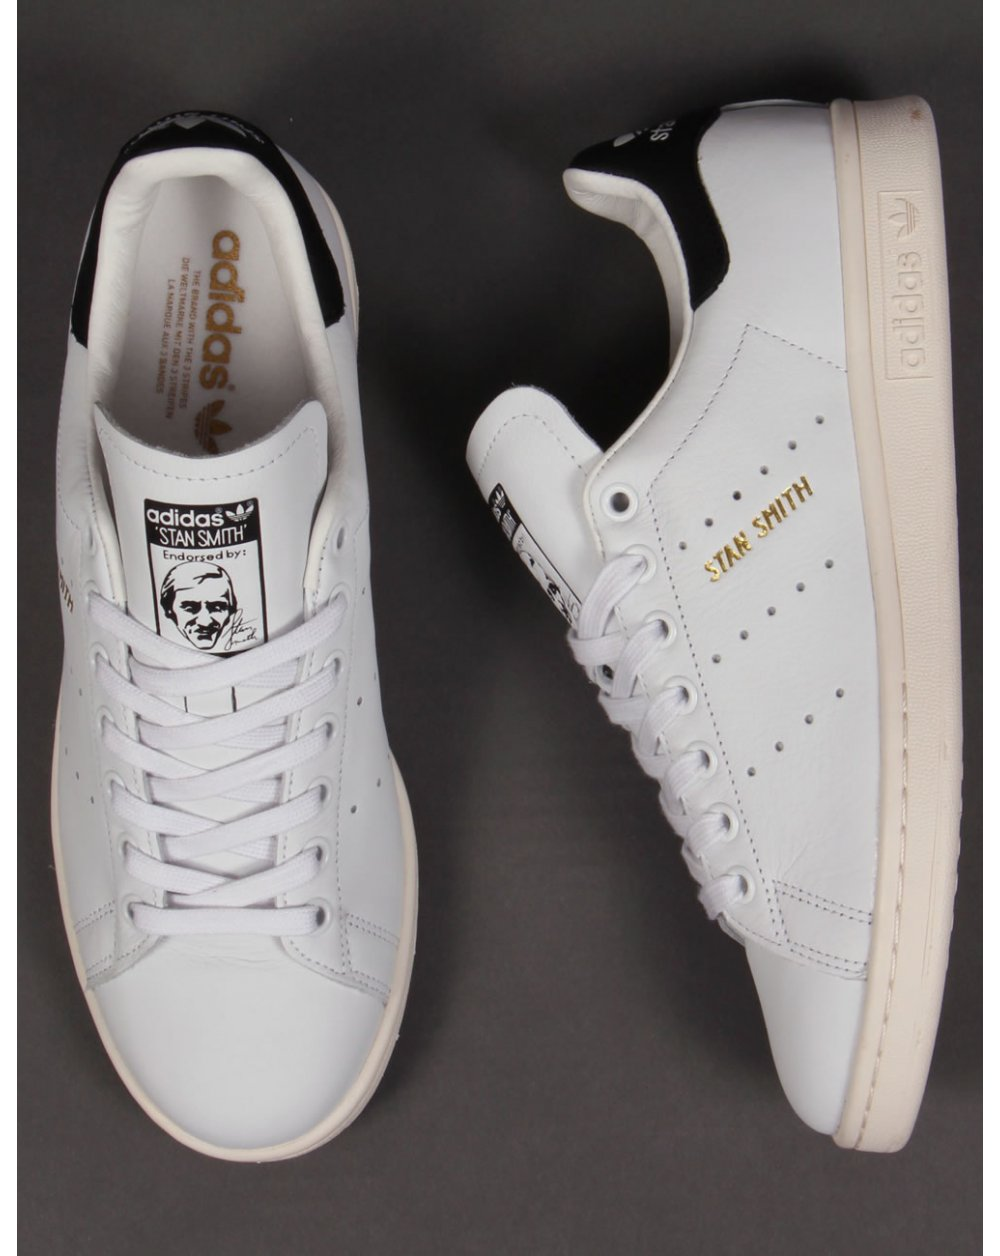 newest 1378a 5a148 Adidas Stan Smith Trainers White/black/gold